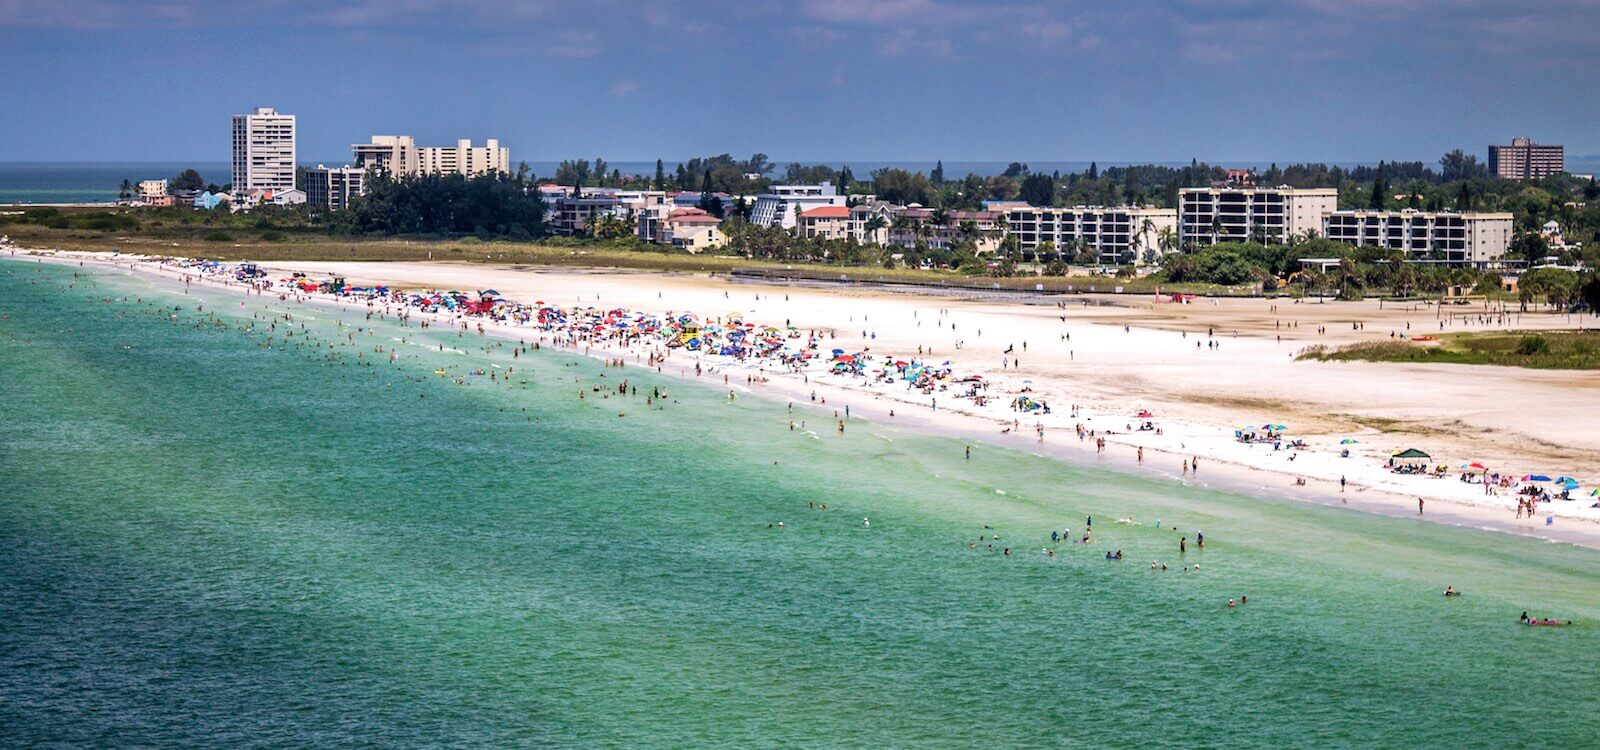 Mustdo Aerial View Of Siesta Key Beach In Sarasota Florida